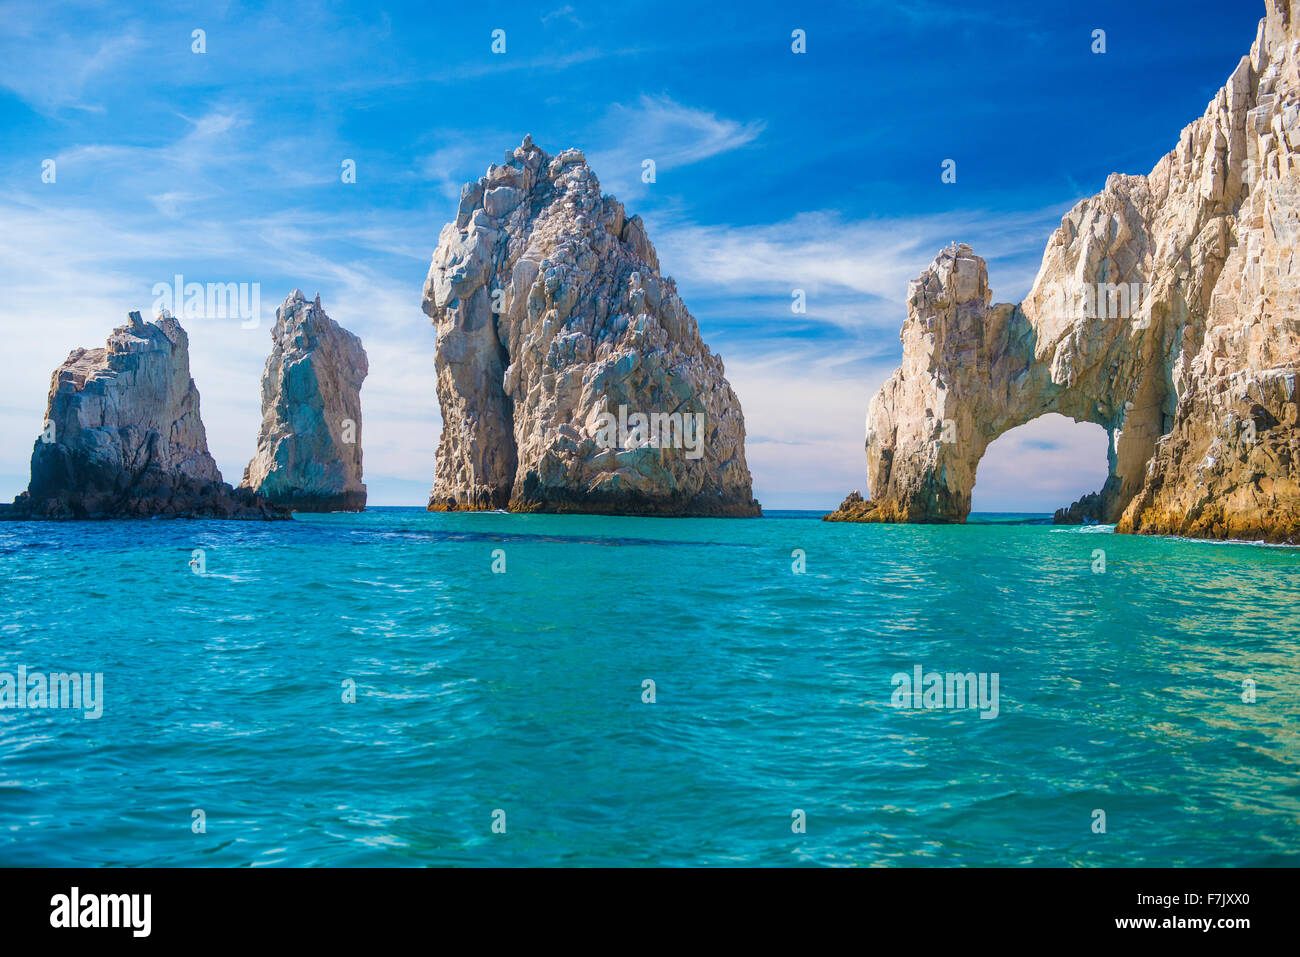 The Arch, Baja California, Mexico, Sea Arch at Land's End ...